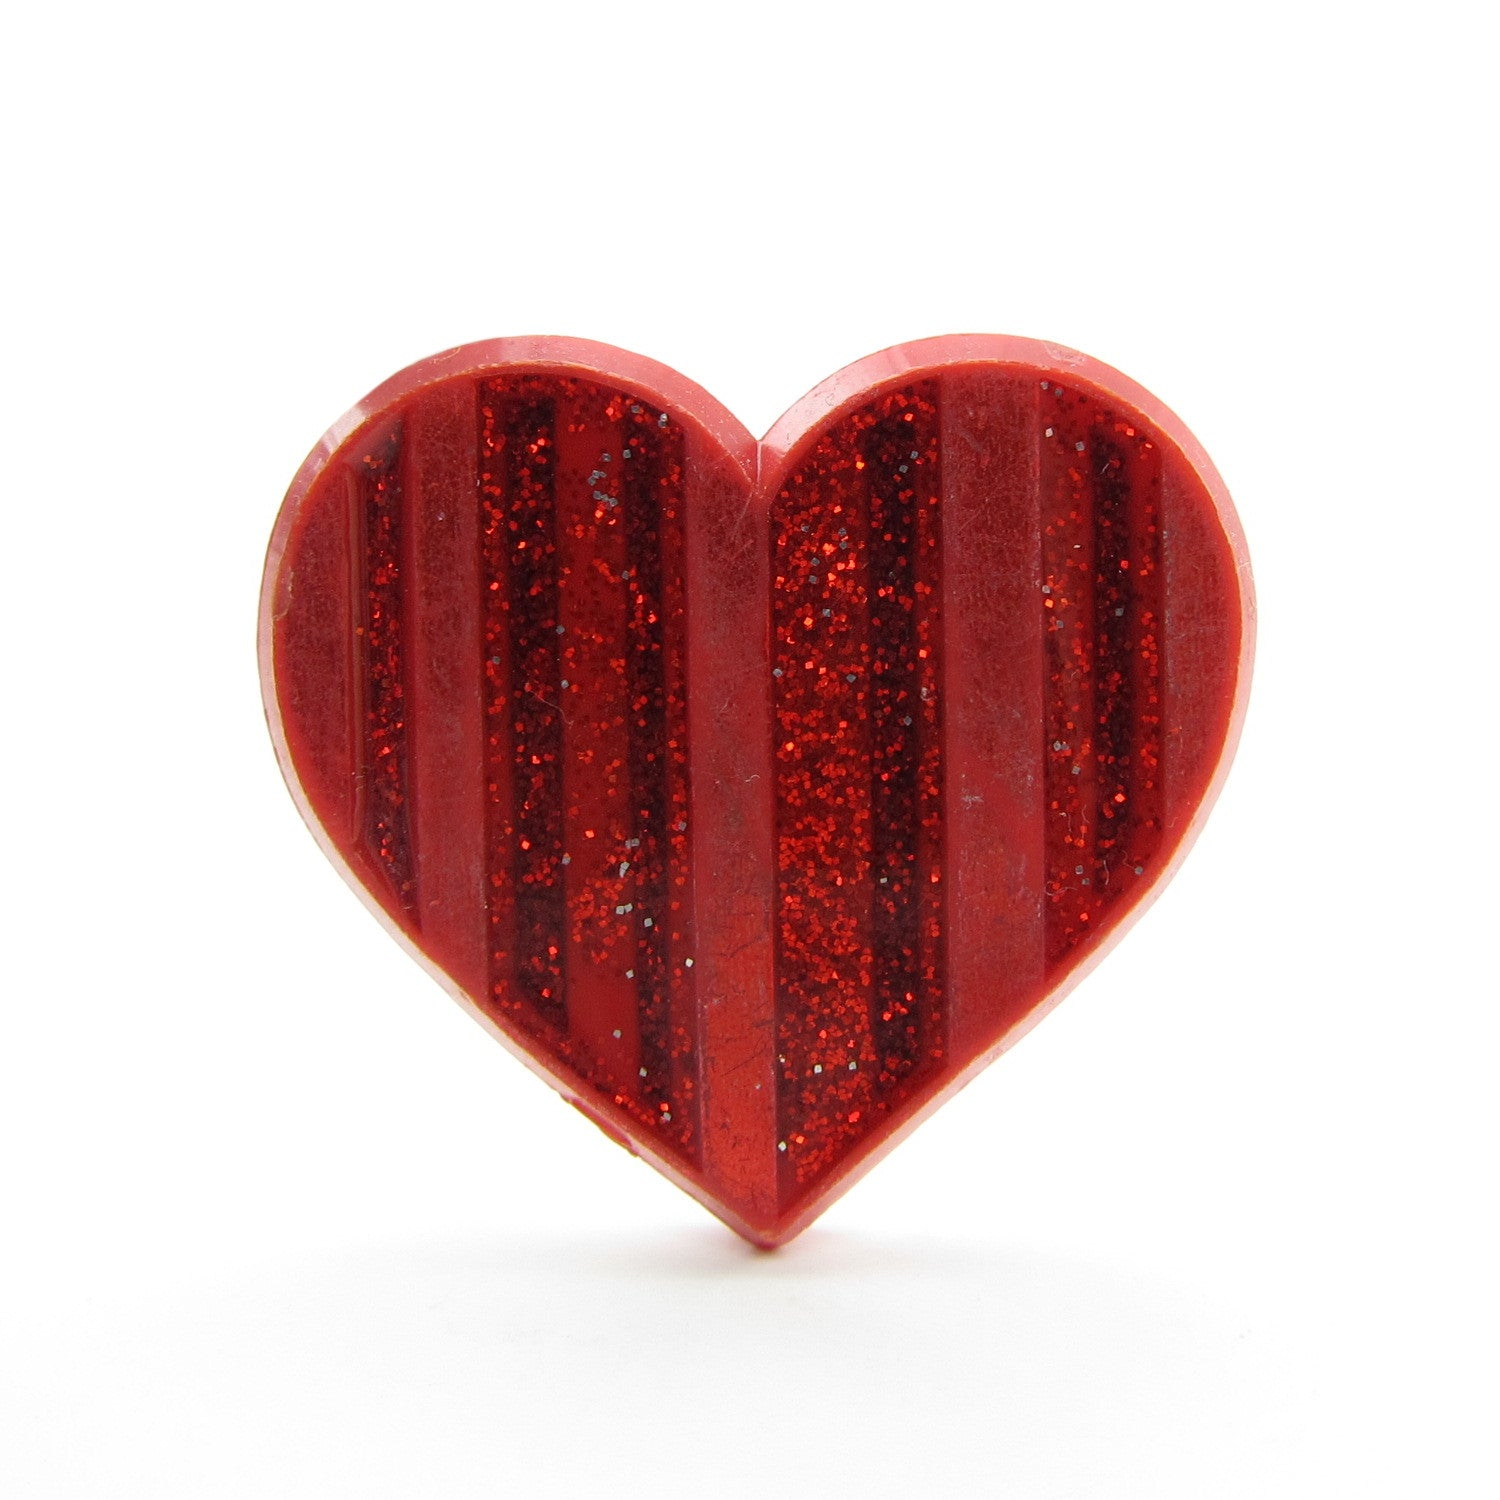 Hallmark Valentine's Day red heart pin